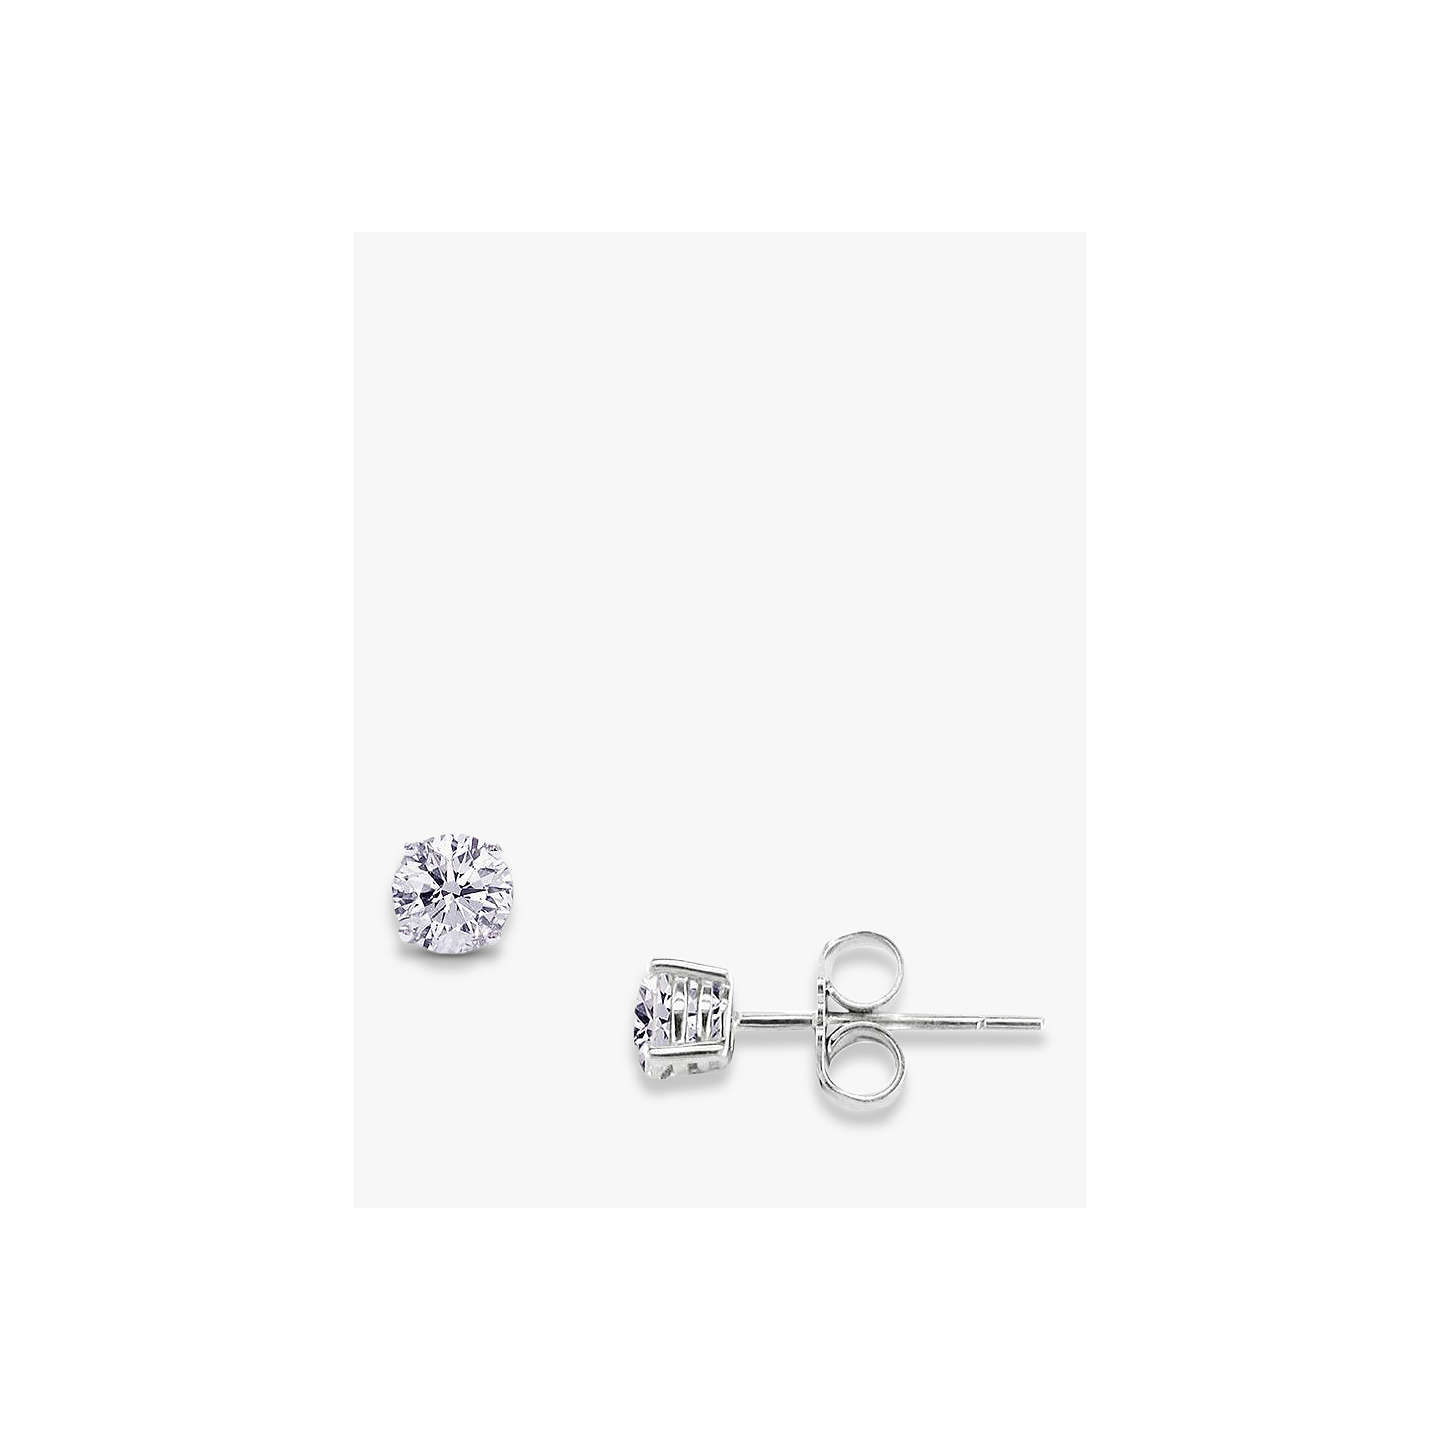 round pave square cut earrings sterling silver stud diamond